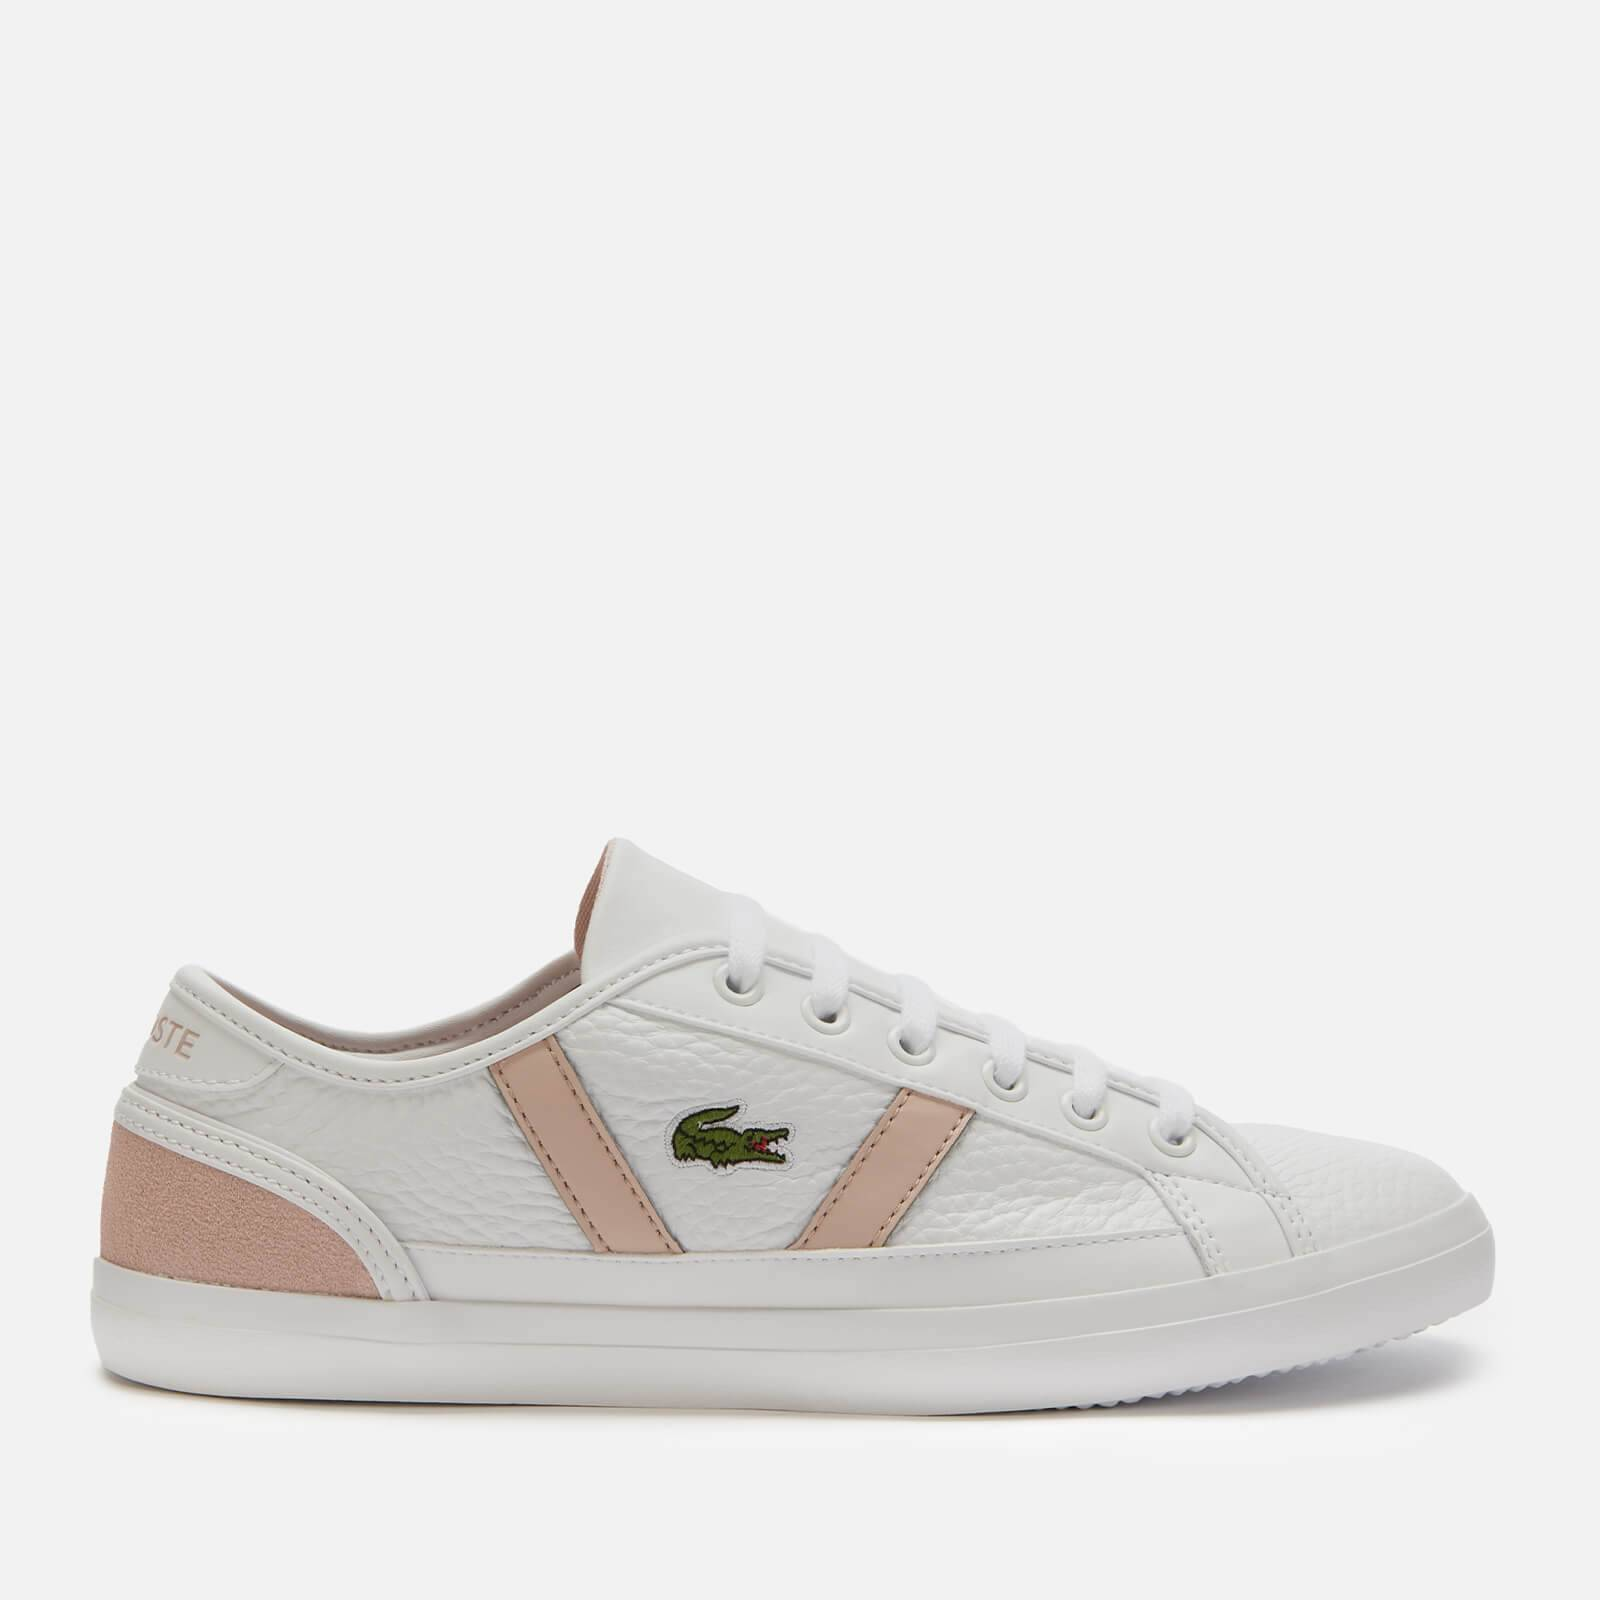 Lacoste Women's Sideline 120 Leather Low Top Trainers - White/Natural - UK 7